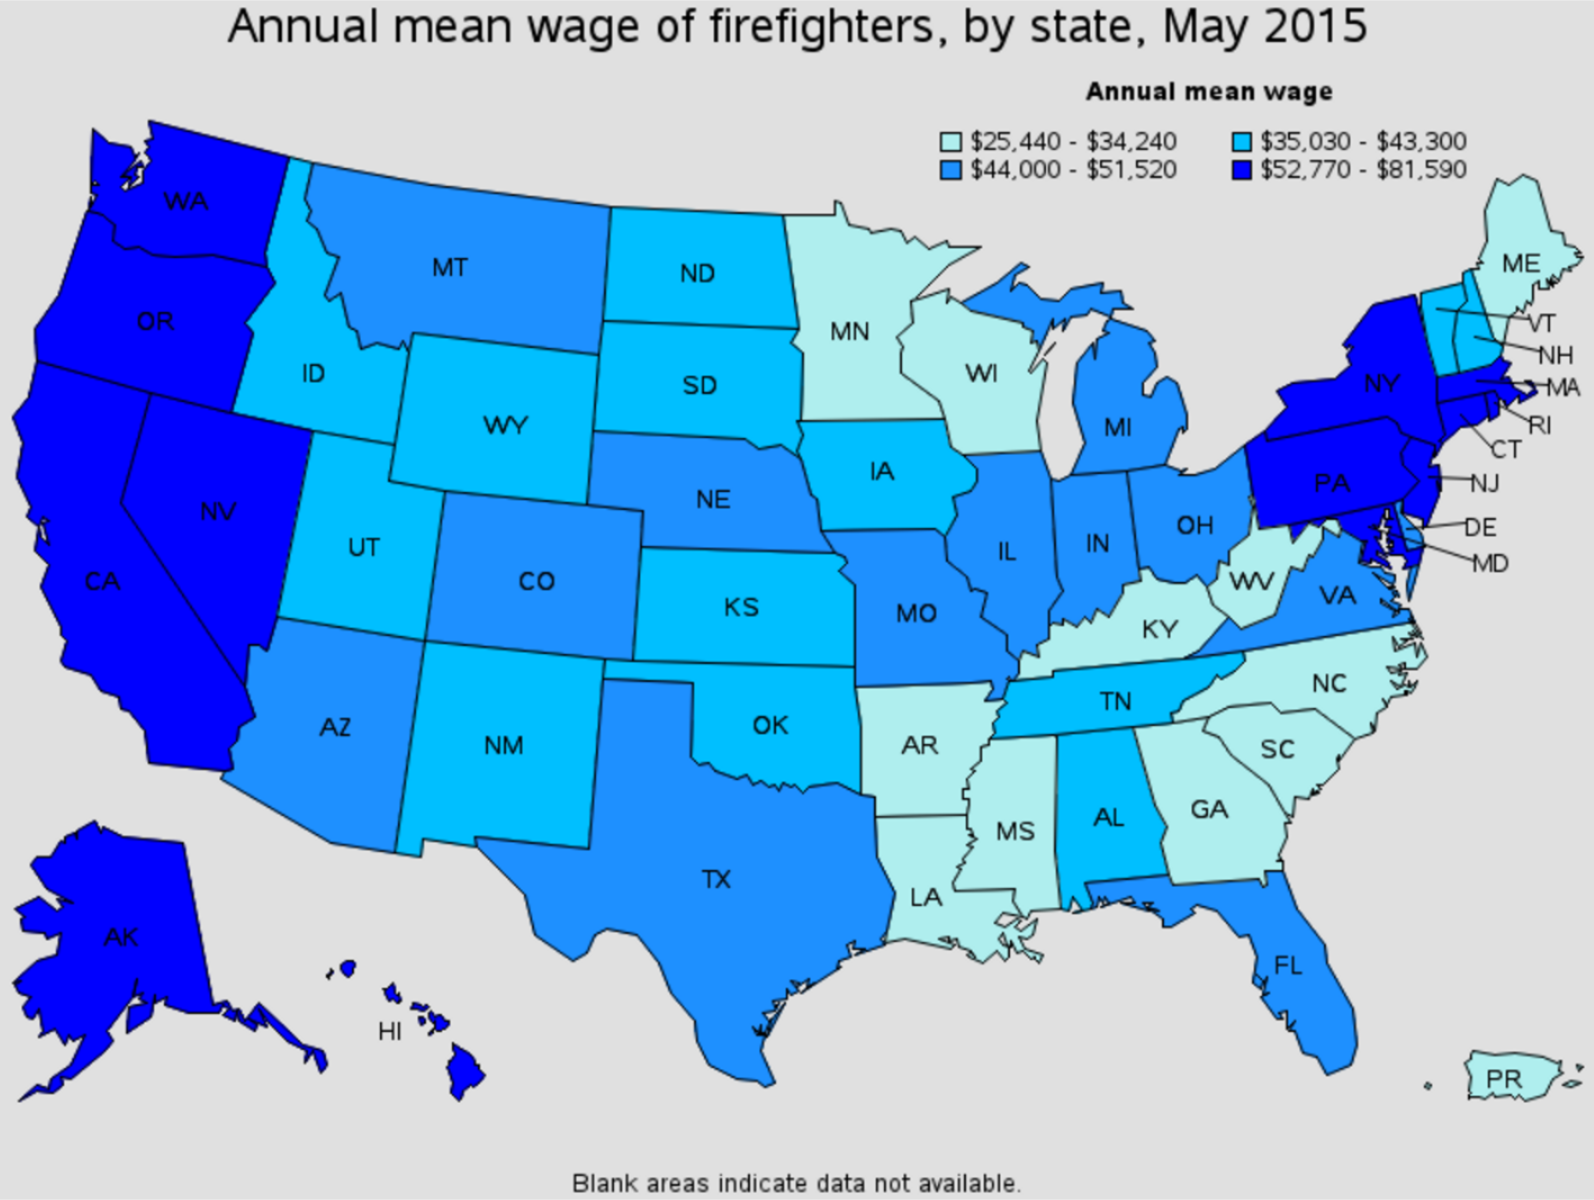 firefighter average salary by state Tremonton Utah